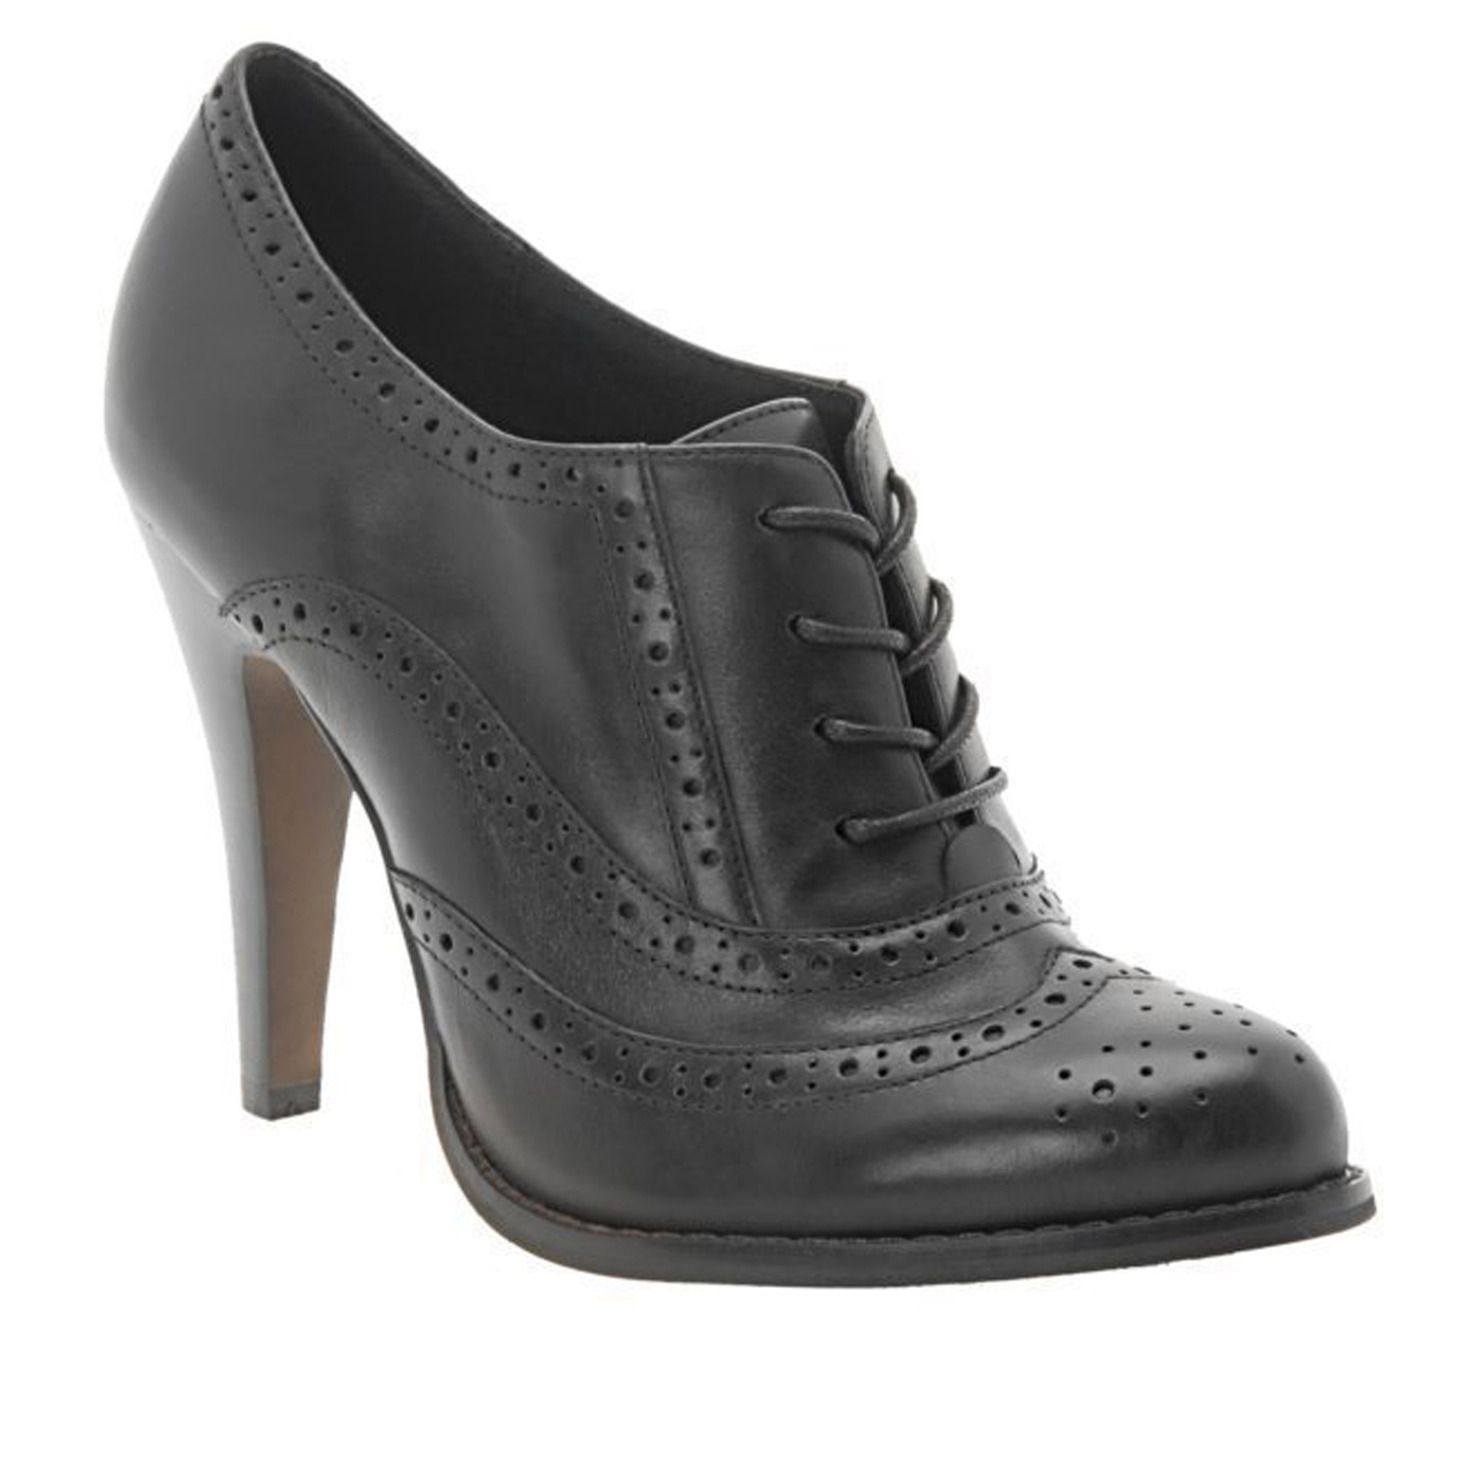 FALGE - women's high heels shoes for sale at ALDO Shoes.